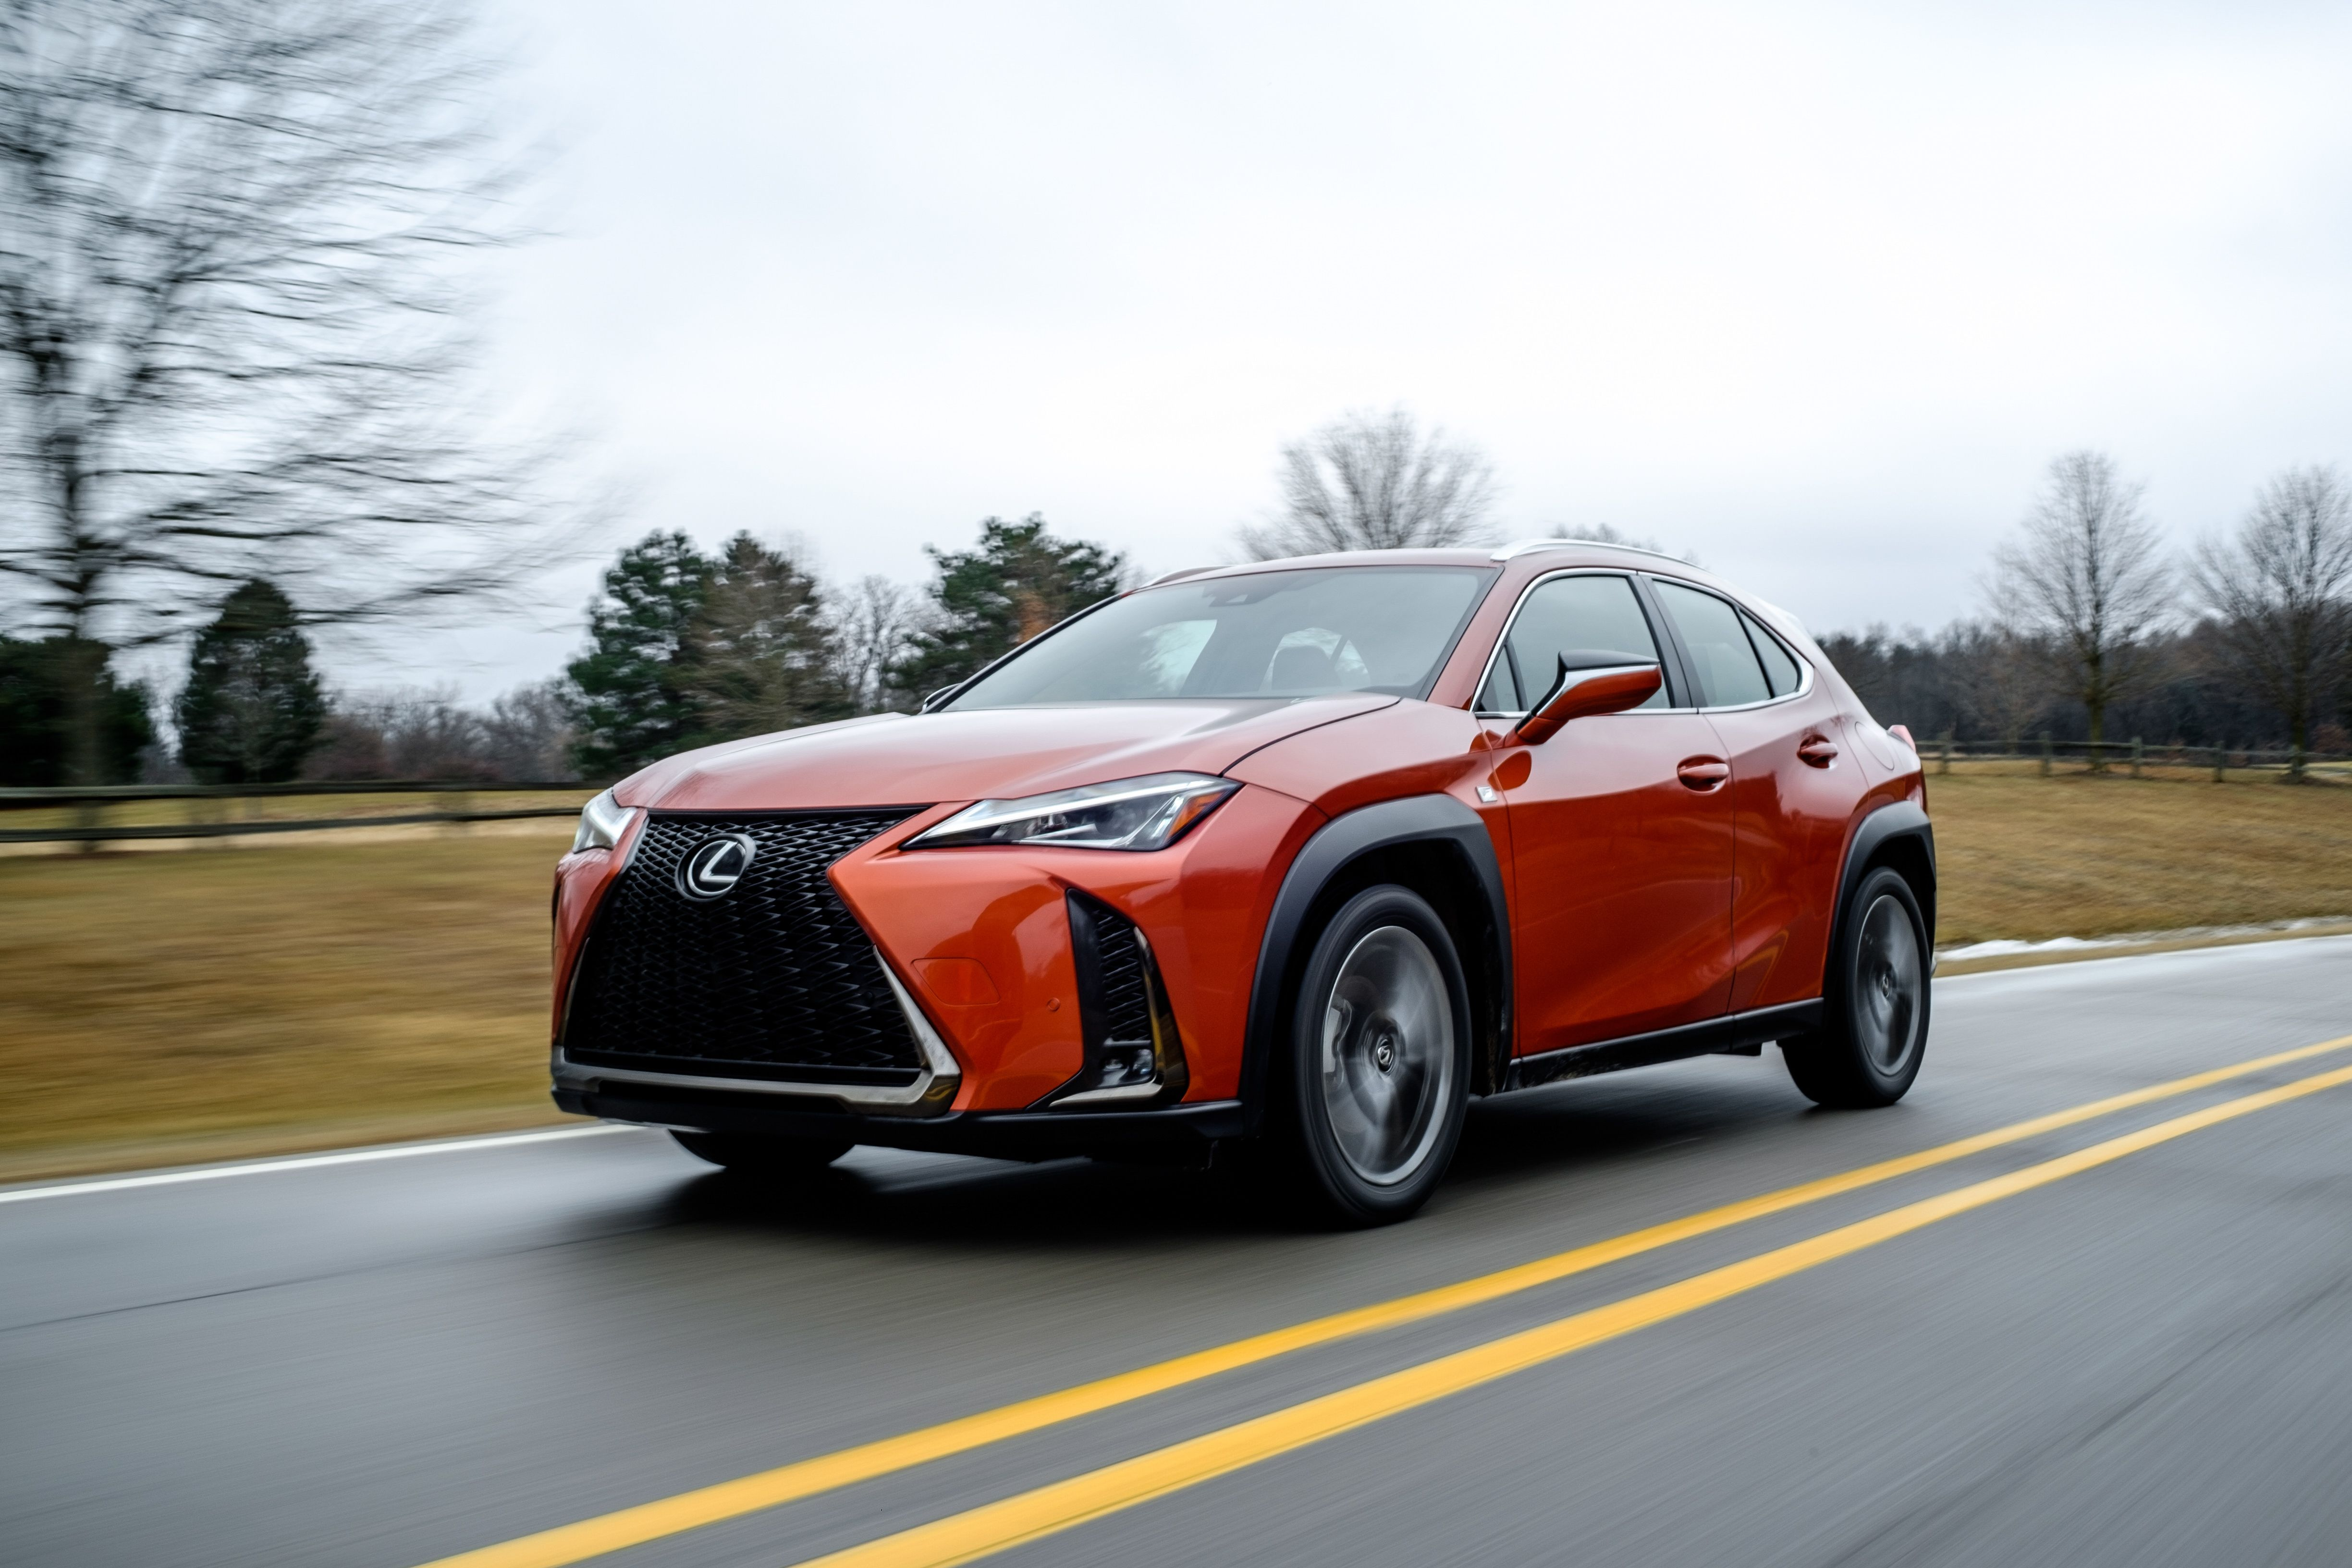 Ux Plug 2019 Lexus Ux New Ux200 And Ux250h Entry Luxury Crossovers